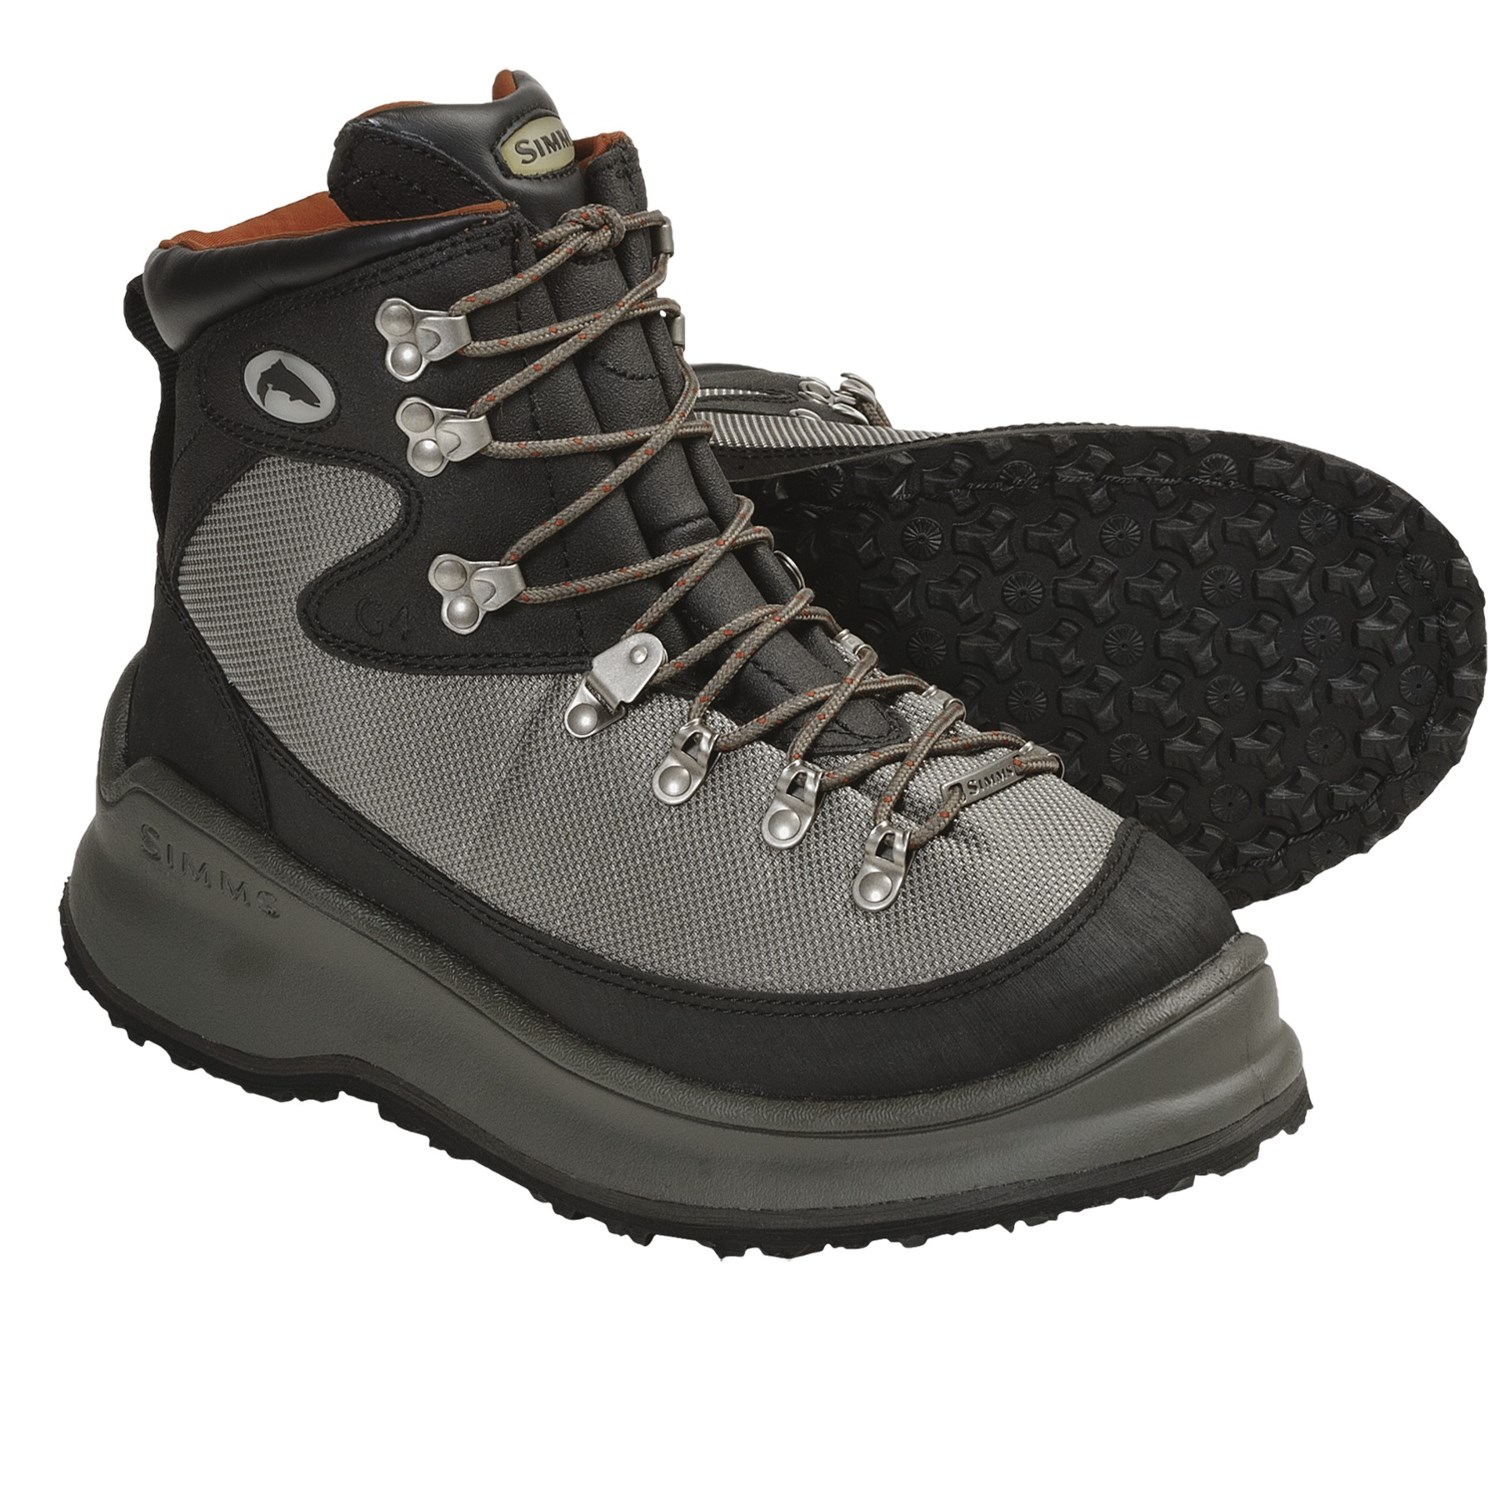 Simms G4 Guide Wading Boots For Men And Women 5270d